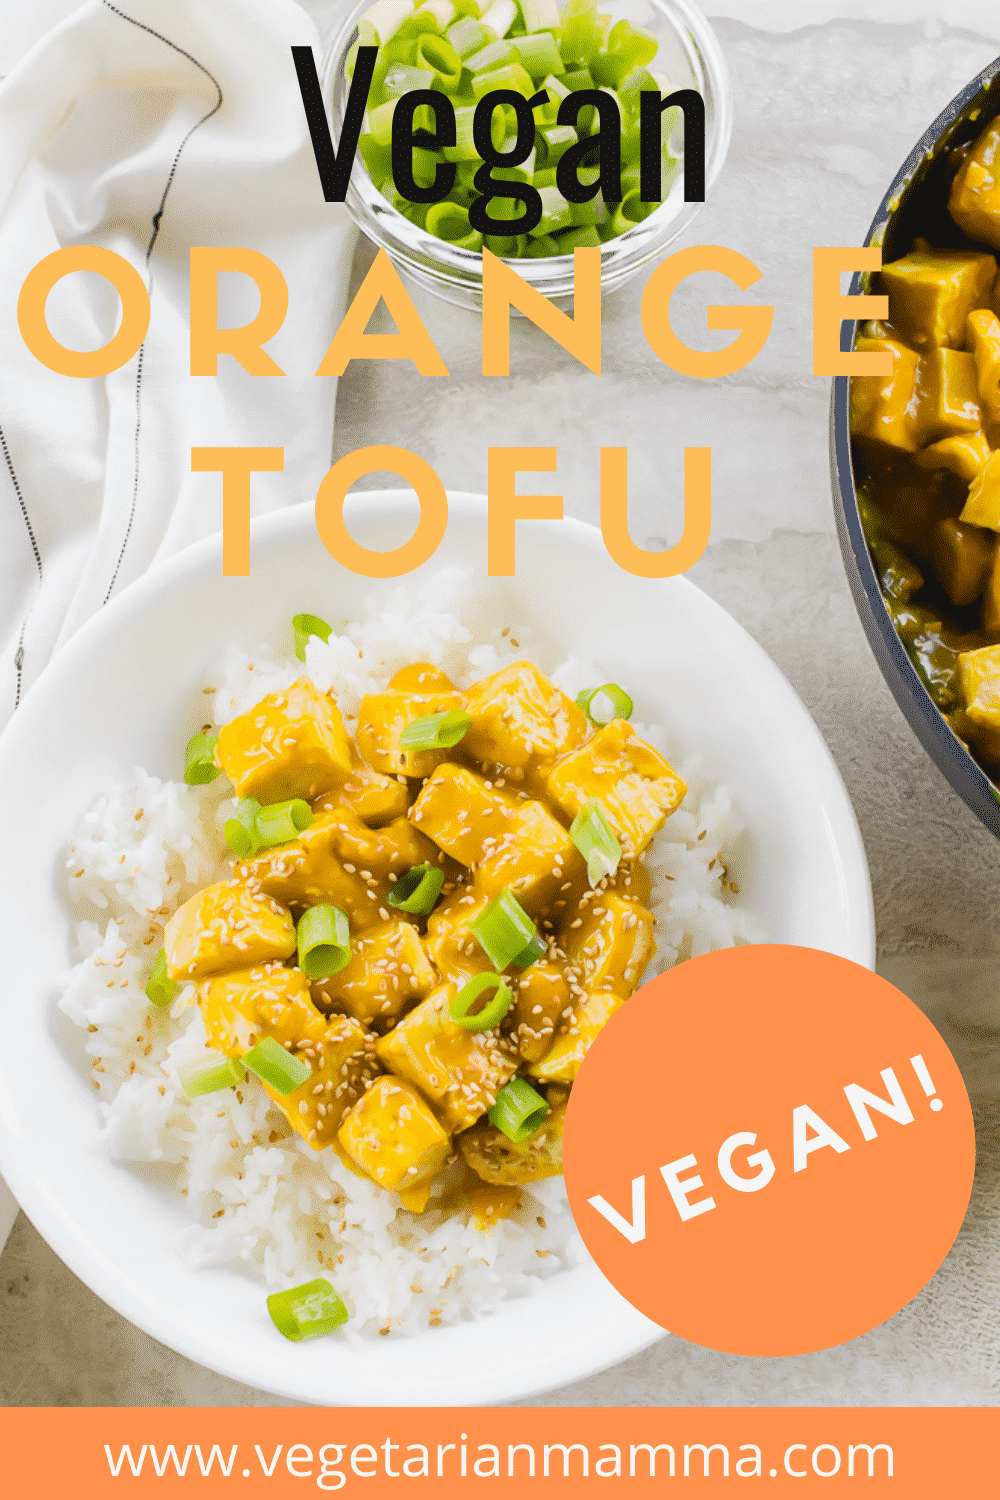 Orange Tofu is a delicious and easy tofu recipe that your entire family will love! This crispy orange tofu recipe is flavored with fresh squeezed orange juice, soy sauce, and served over rice. #orangetofu #orangechicken #veganorangechicken